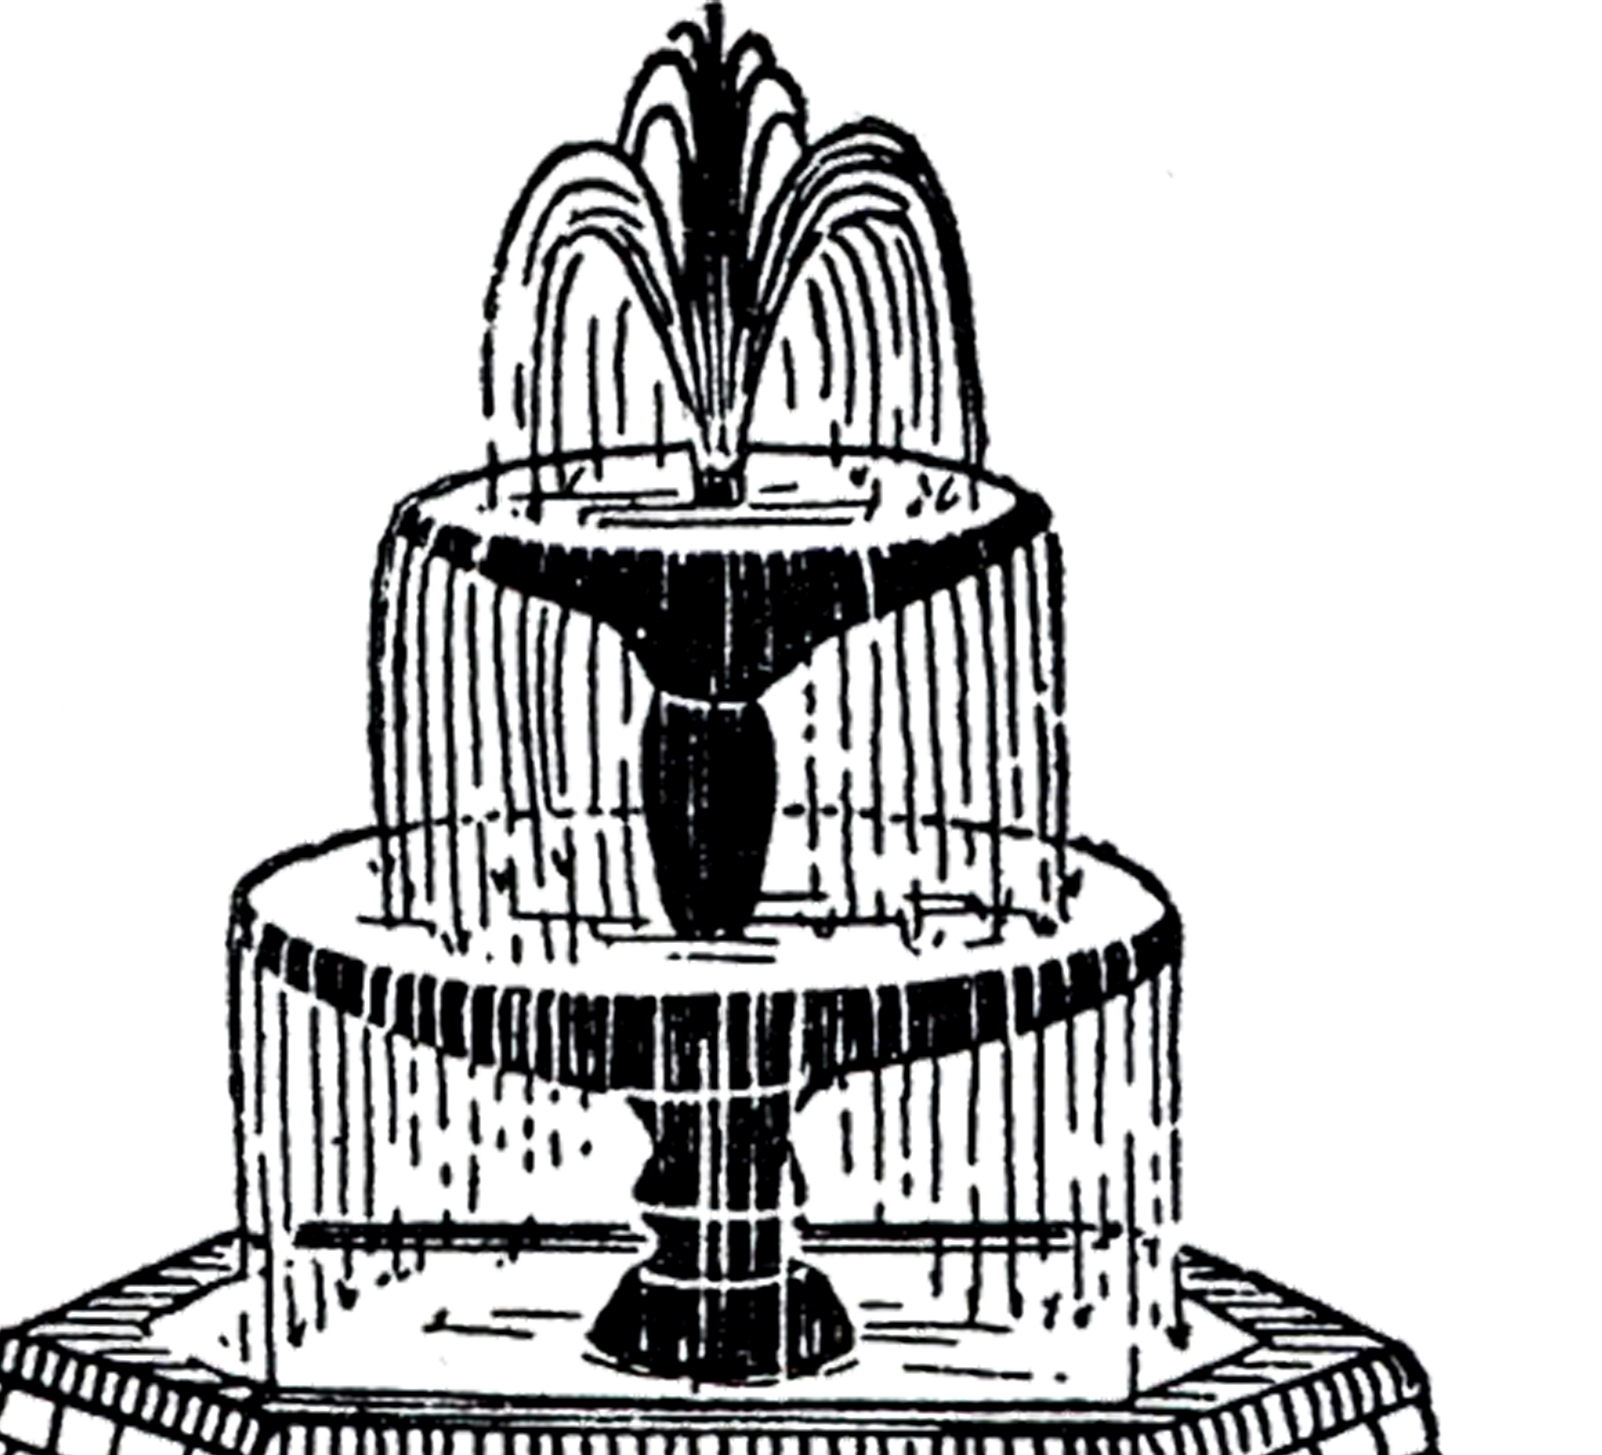 Free Fountain Cliparts, Download Free Clip Art, Free Clip.